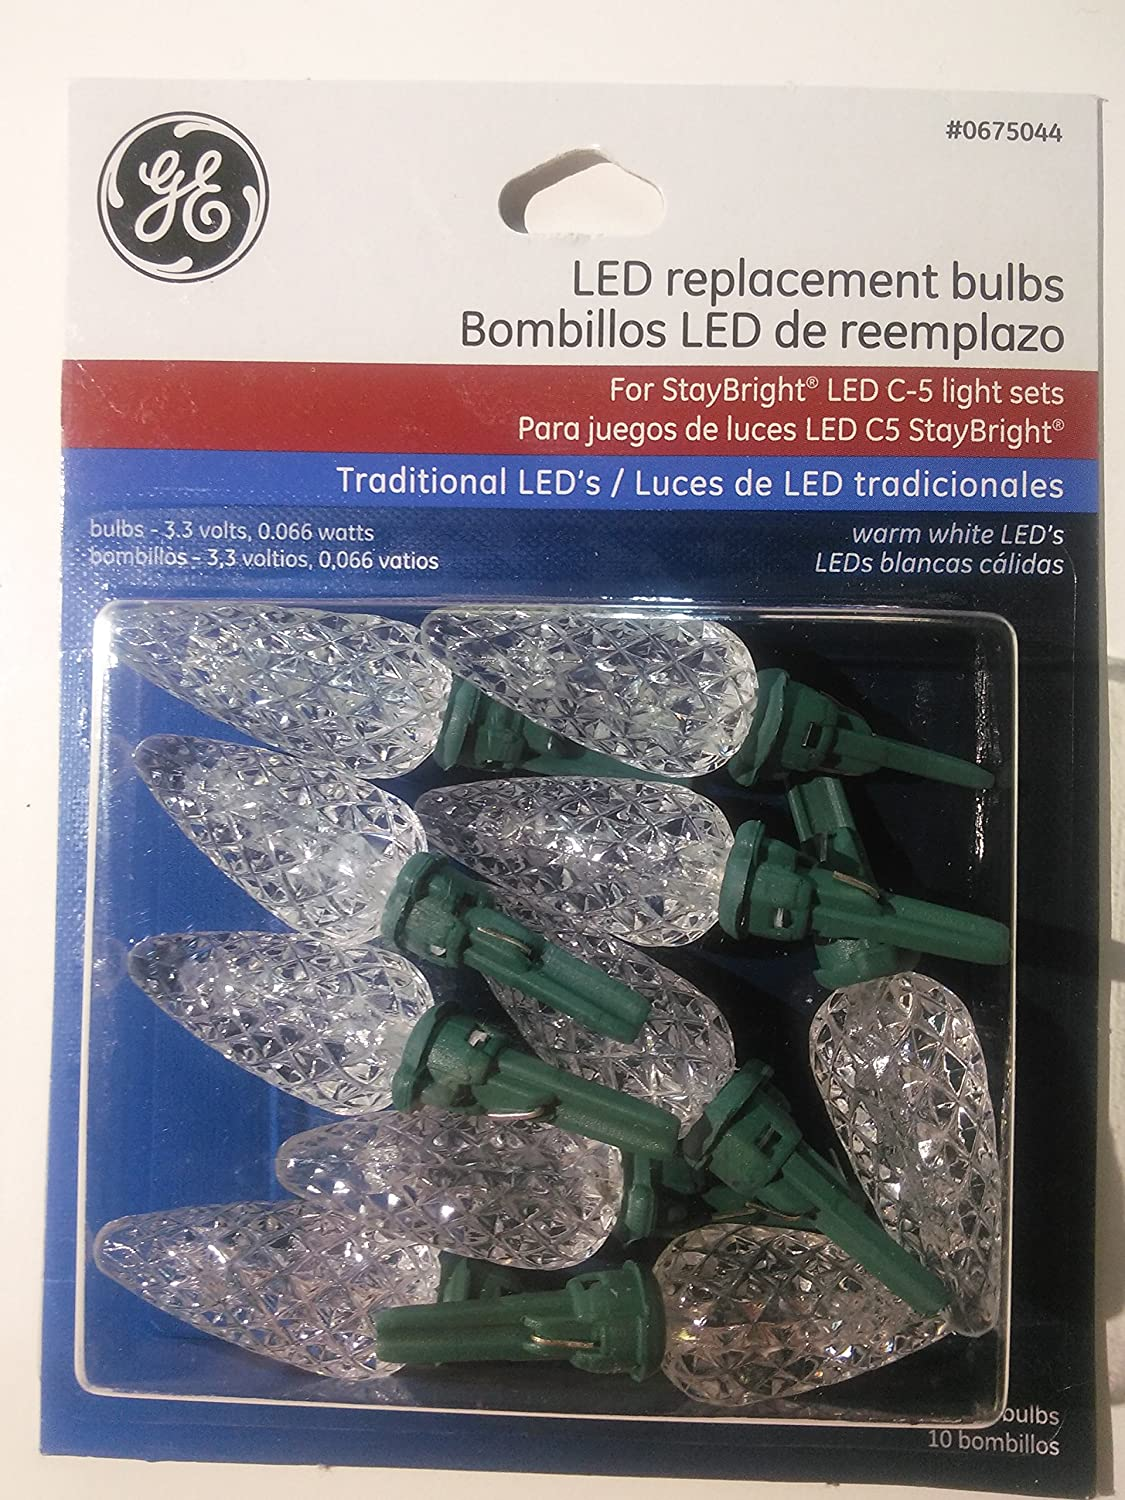 LED Replacement Bulbs Assorted for Energy Smart pine cone shape asst colors - - Amazon.com